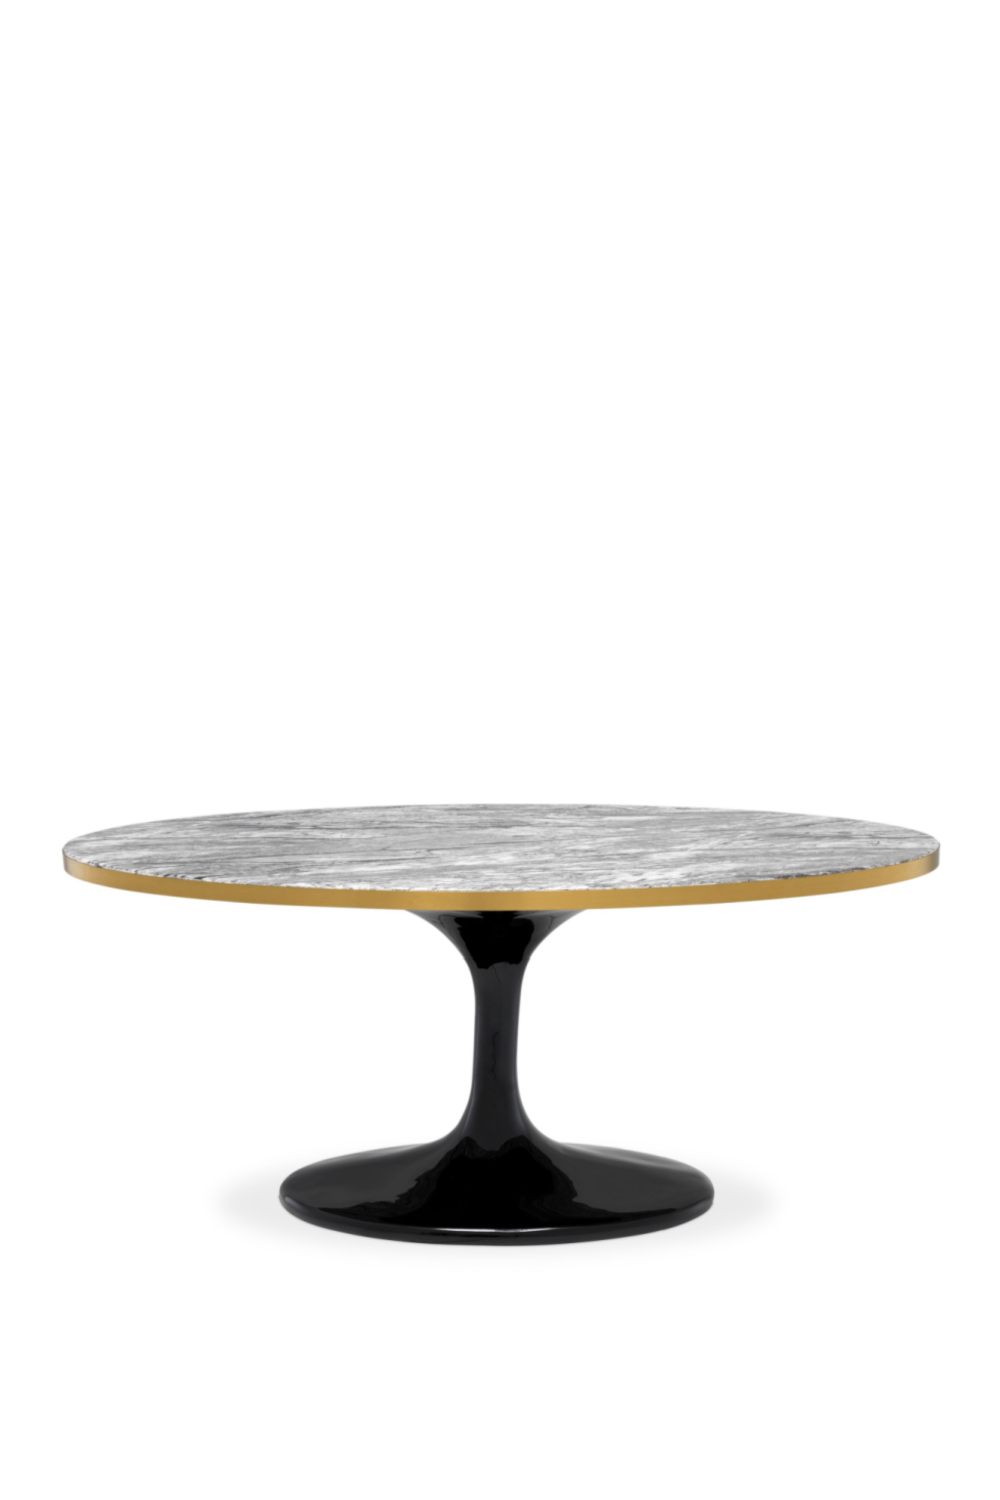 Oval Gray Marble Coffee Table | Eichholtz Parme |#1 Eichholtz Retailer